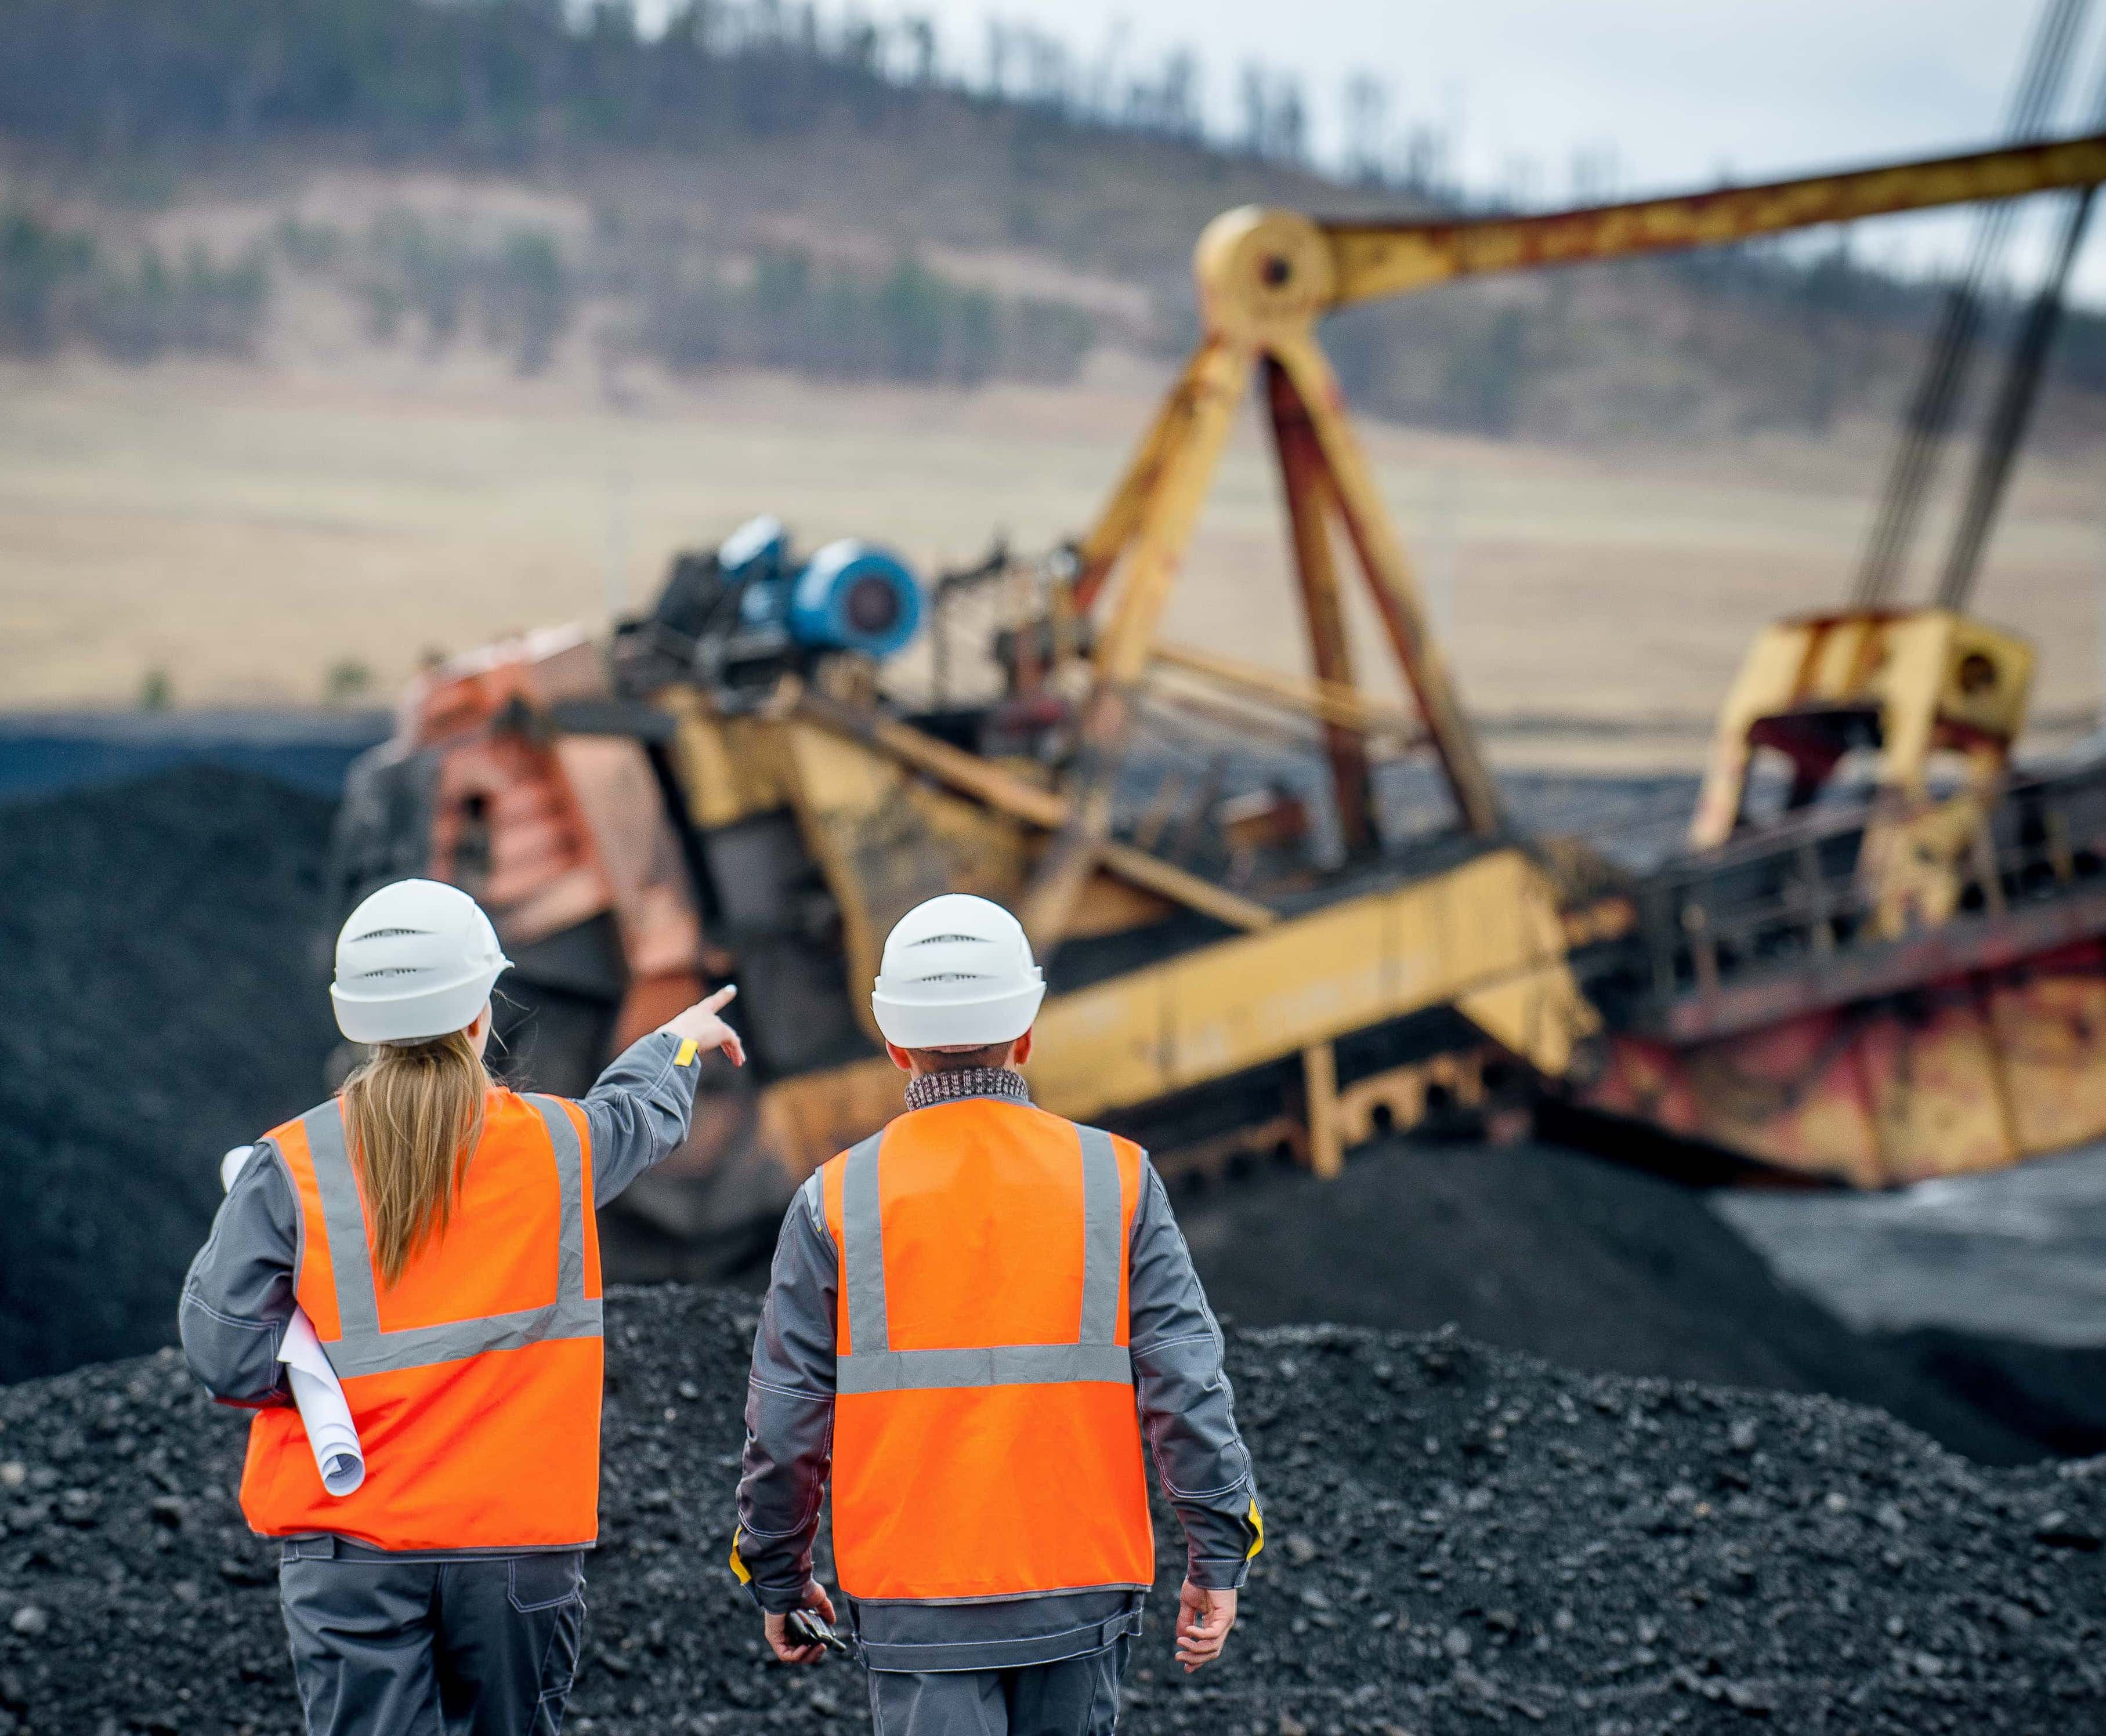 Mining%20Safety%20Awareness_AdobeStock_155394554-pichi.jpg